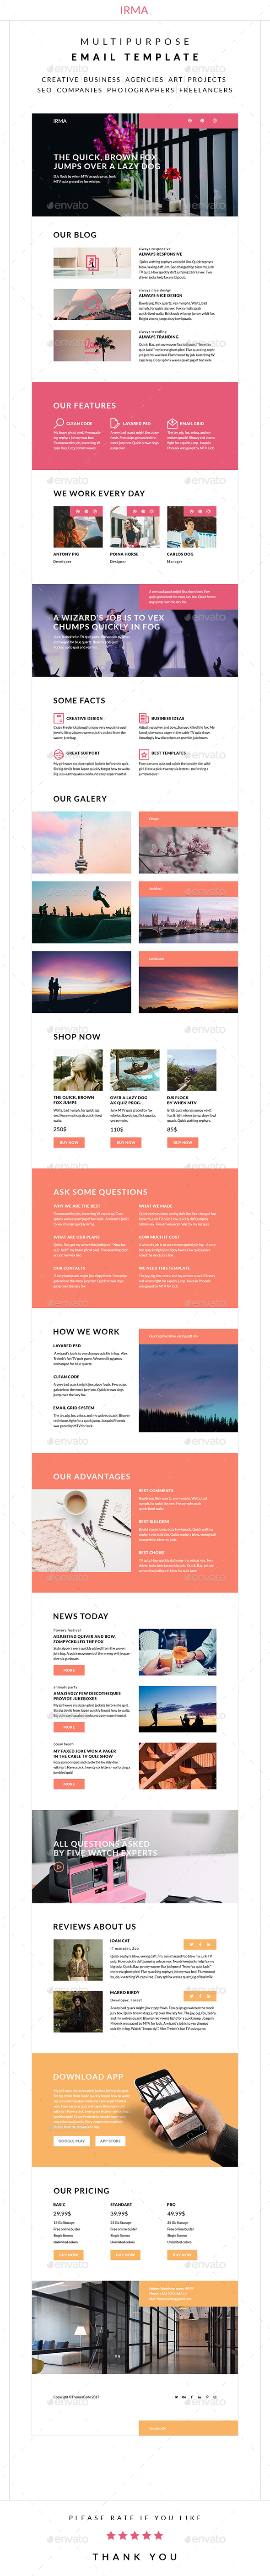 Irma – Multipurpose Email Template - E-newsletters Web Elements